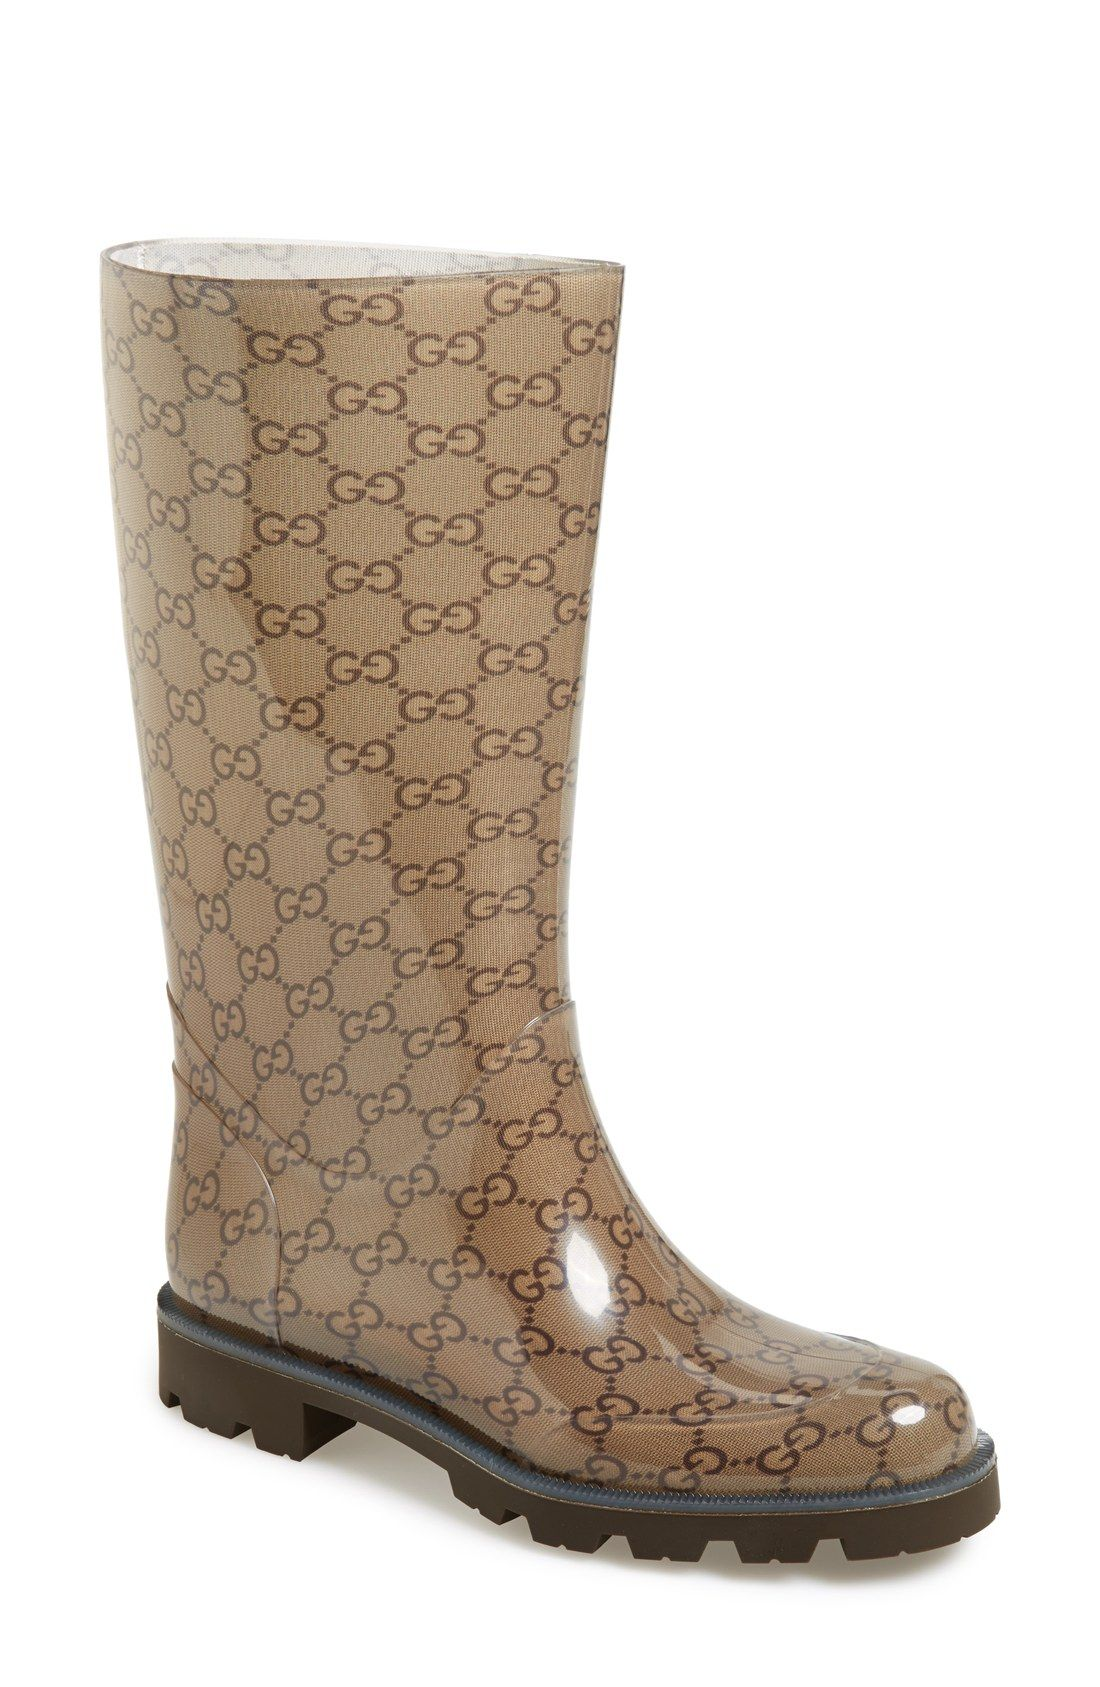 Gucci rain boots for winter!   Winter Fashion   Pinterest   Boots ... 92bb8962413